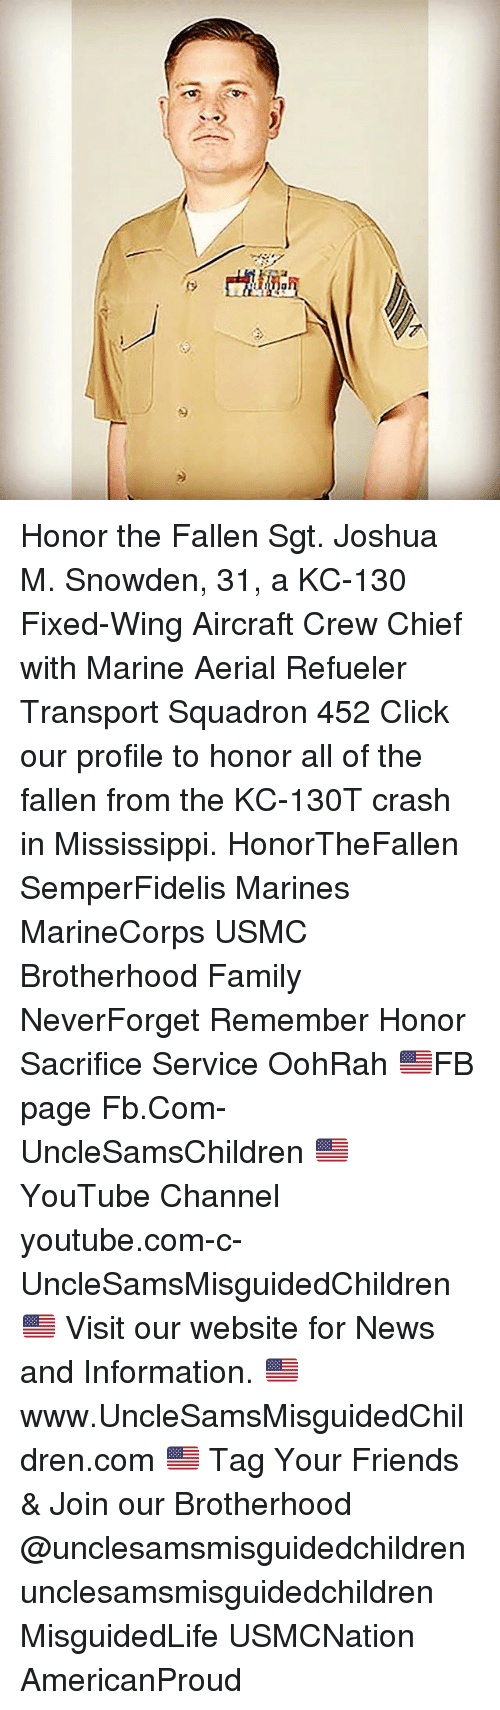 Click, Family, and Friends: Honor the Fallen Sgt. Joshua M. Snowden, 31, a KC-130 Fixed-Wing Aircraft Crew Chief with Marine Aerial Refueler Transport Squadron 452 Click our profile to honor all of the fallen from the KC-130T crash in Mississippi. HonorTheFallen SemperFidelis Marines MarineCorps USMC Brotherhood Family NeverForget Remember Honor Sacrifice Service OohRah 🇺🇸FB page Fb.Com-UncleSamsChildren 🇺🇸YouTube Channel youtube.com-c-UncleSamsMisguidedChildren 🇺🇸 Visit our website for News and Information. 🇺🇸 www.UncleSamsMisguidedChildren.com 🇺🇸 Tag Your Friends & Join our Brotherhood @unclesamsmisguidedchildren unclesamsmisguidedchildren MisguidedLife USMCNation AmericanProud